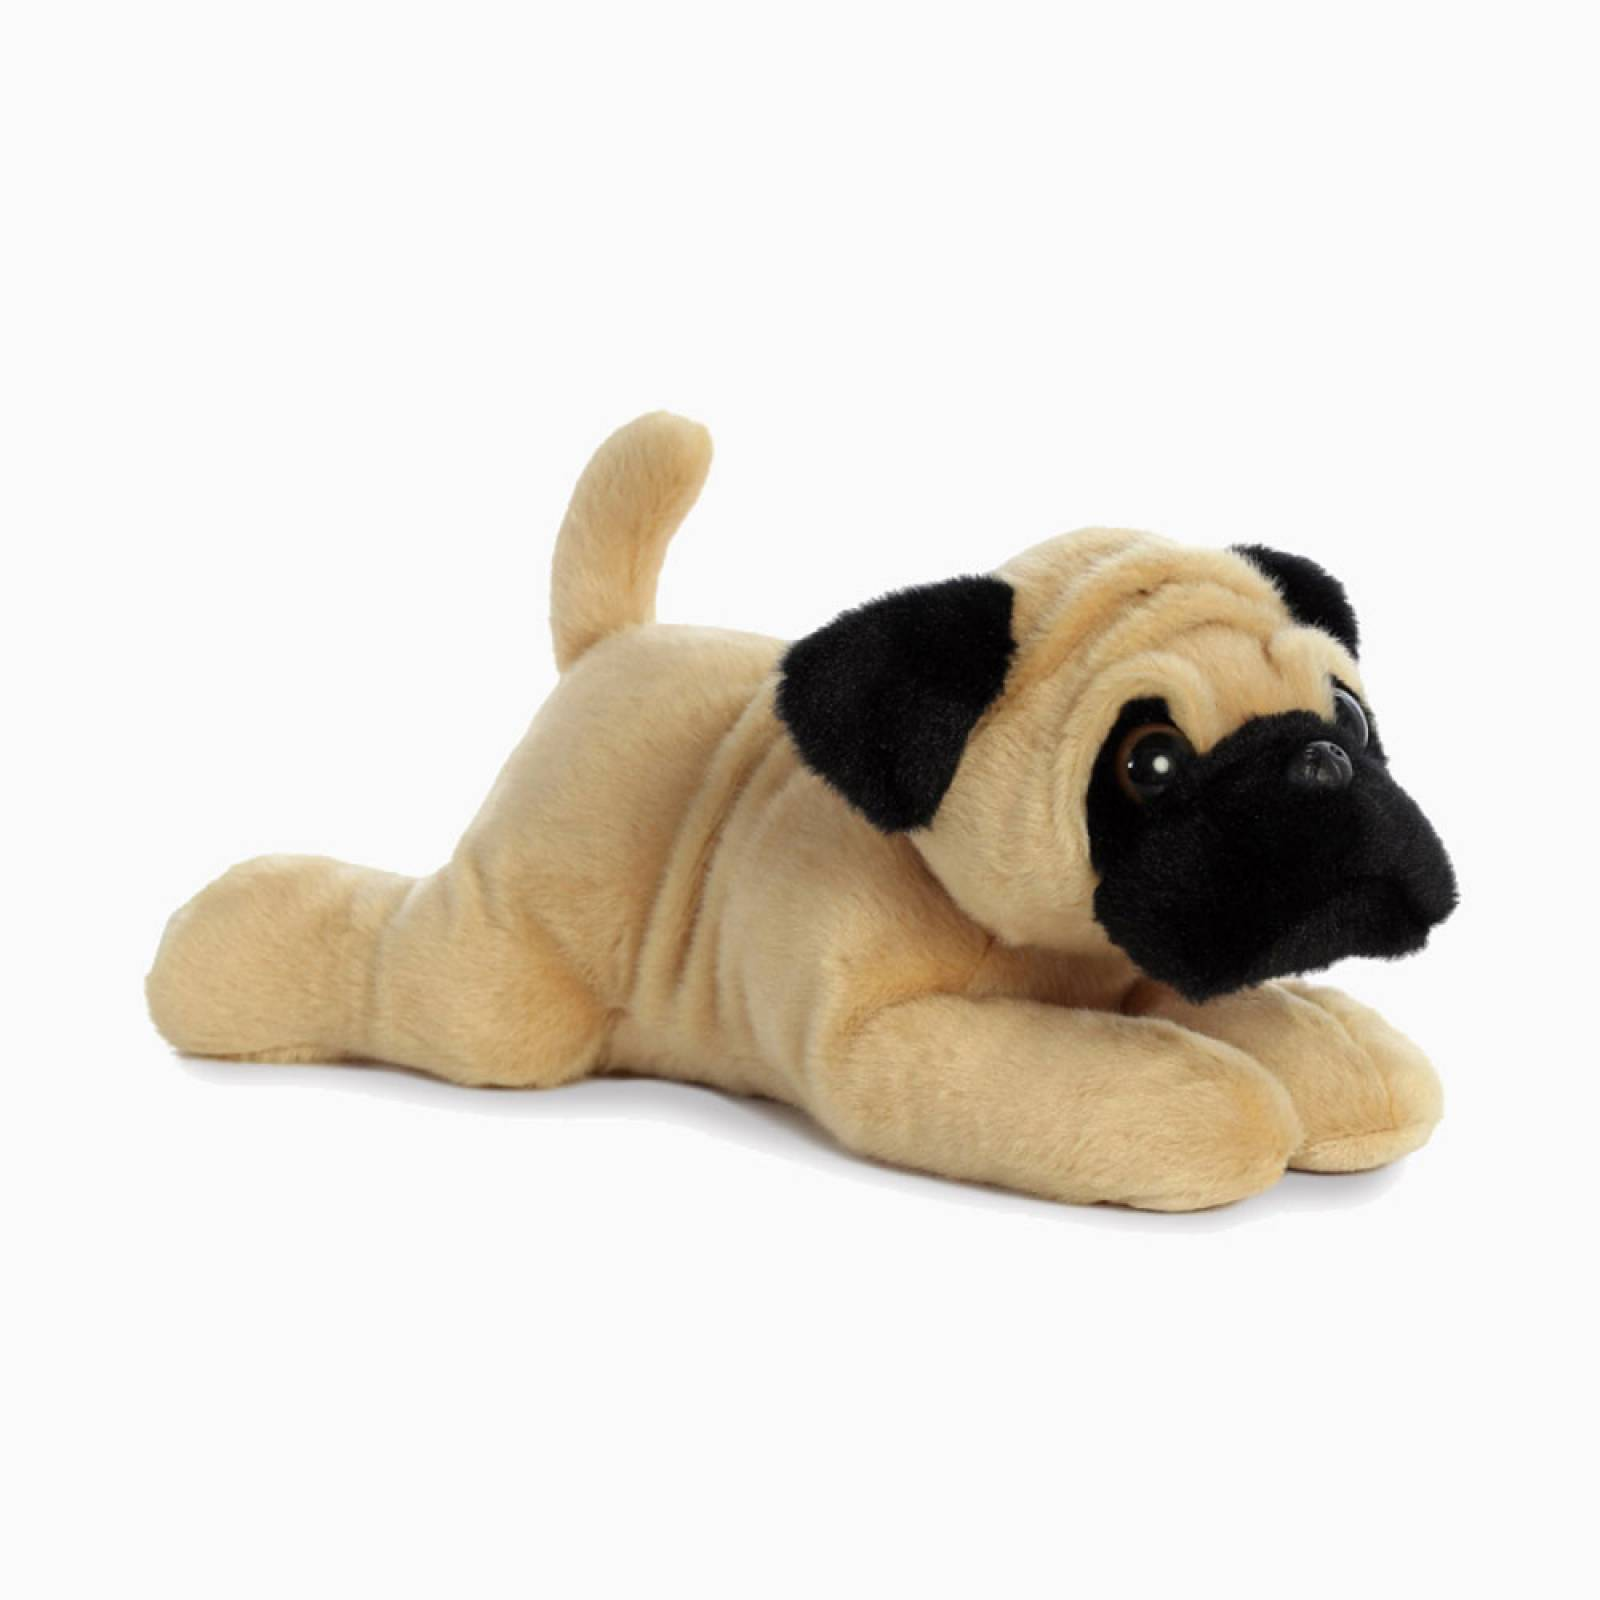 Pug Dog Flopsies Soft Toy 0+